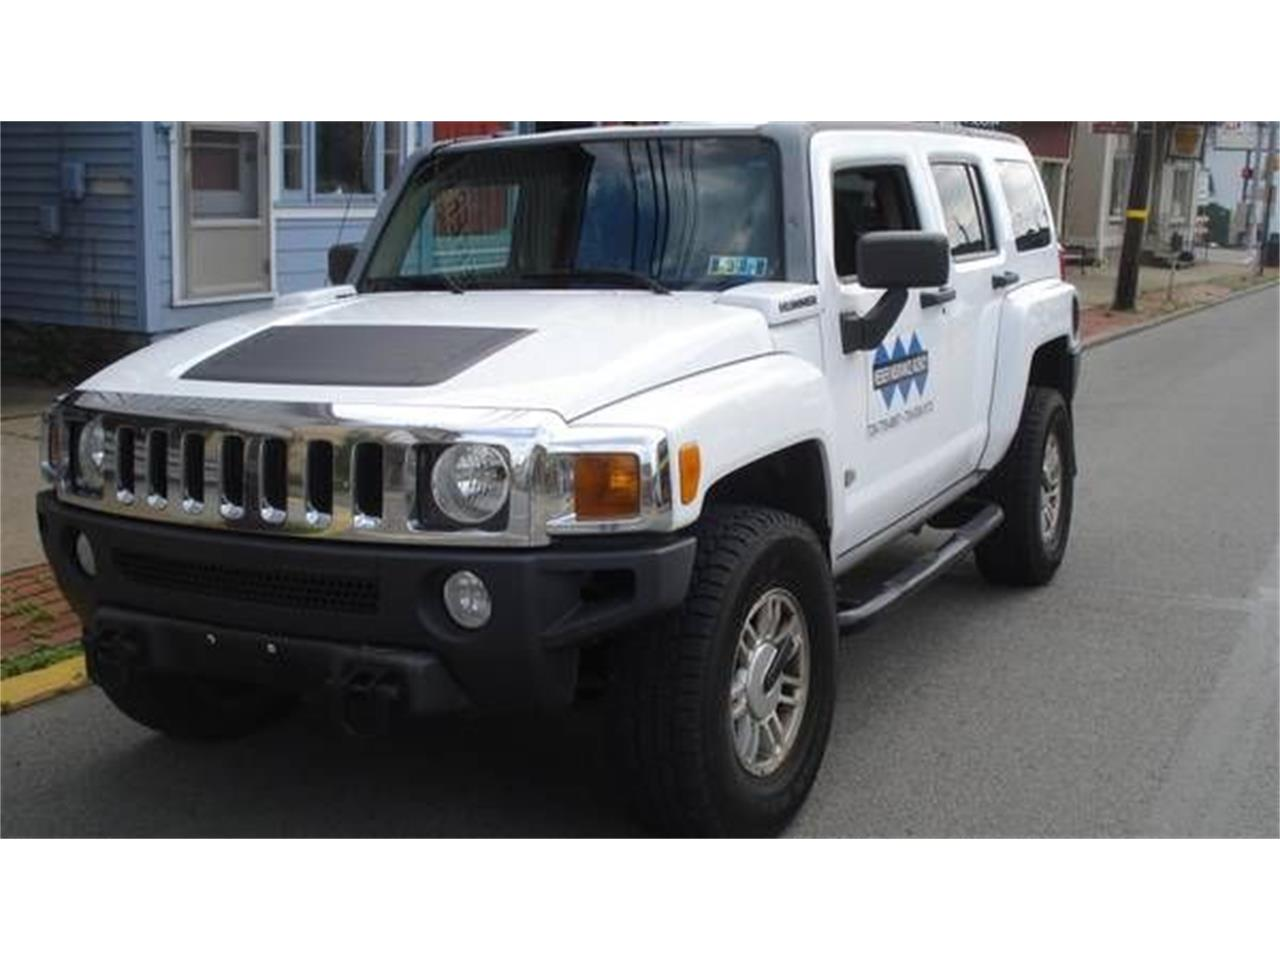 2006 Hummer H3 for sale in Cadillac, MI – photo 4